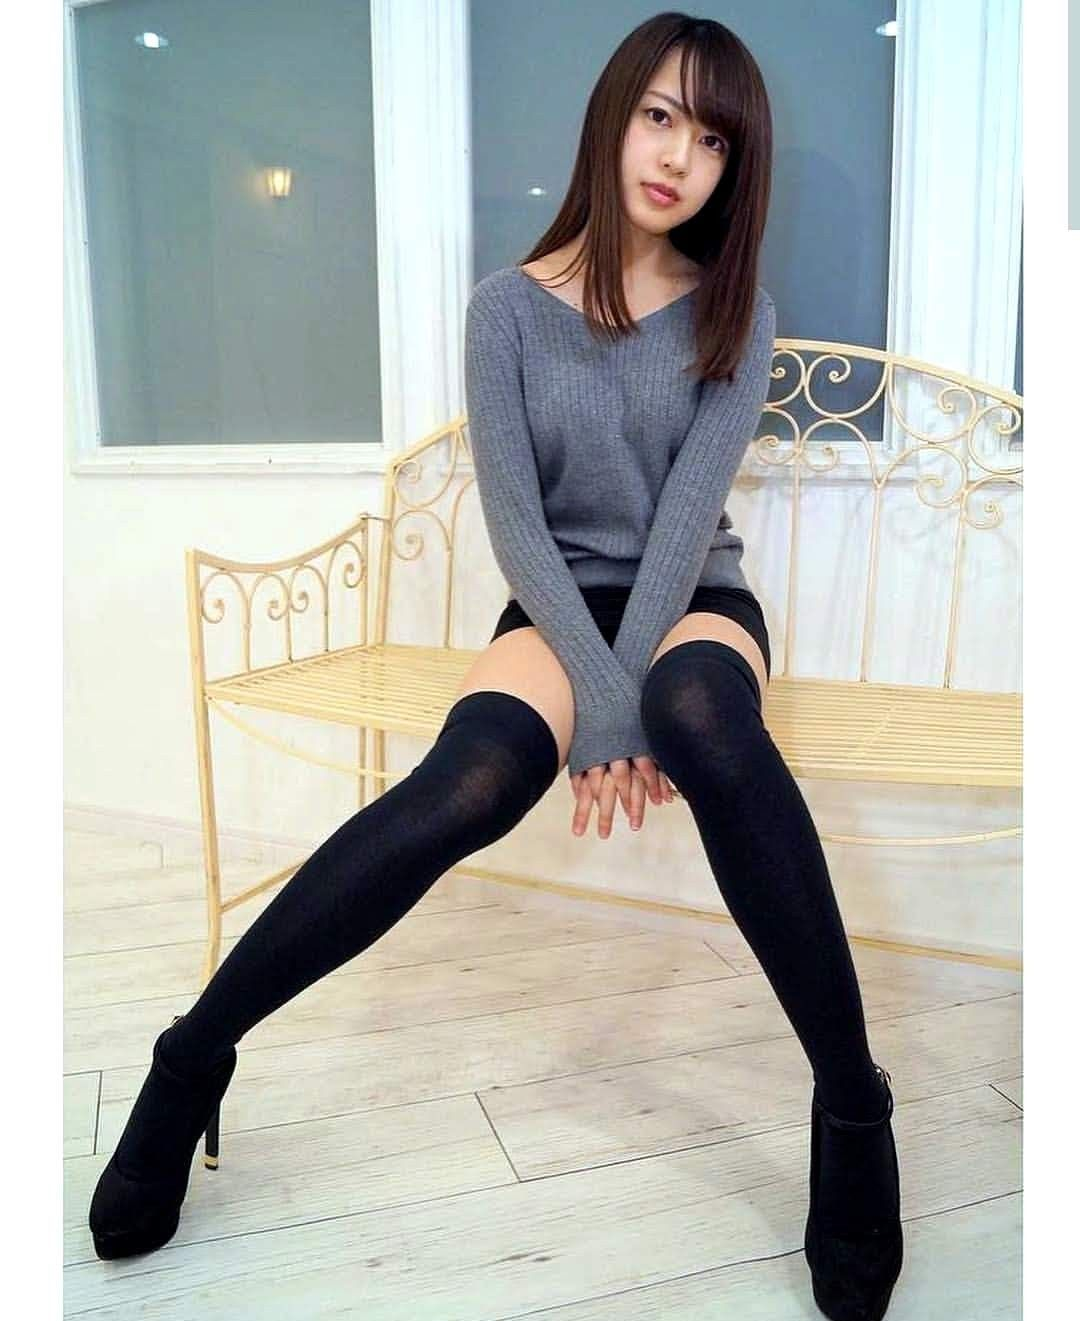 High Heels Stockings German